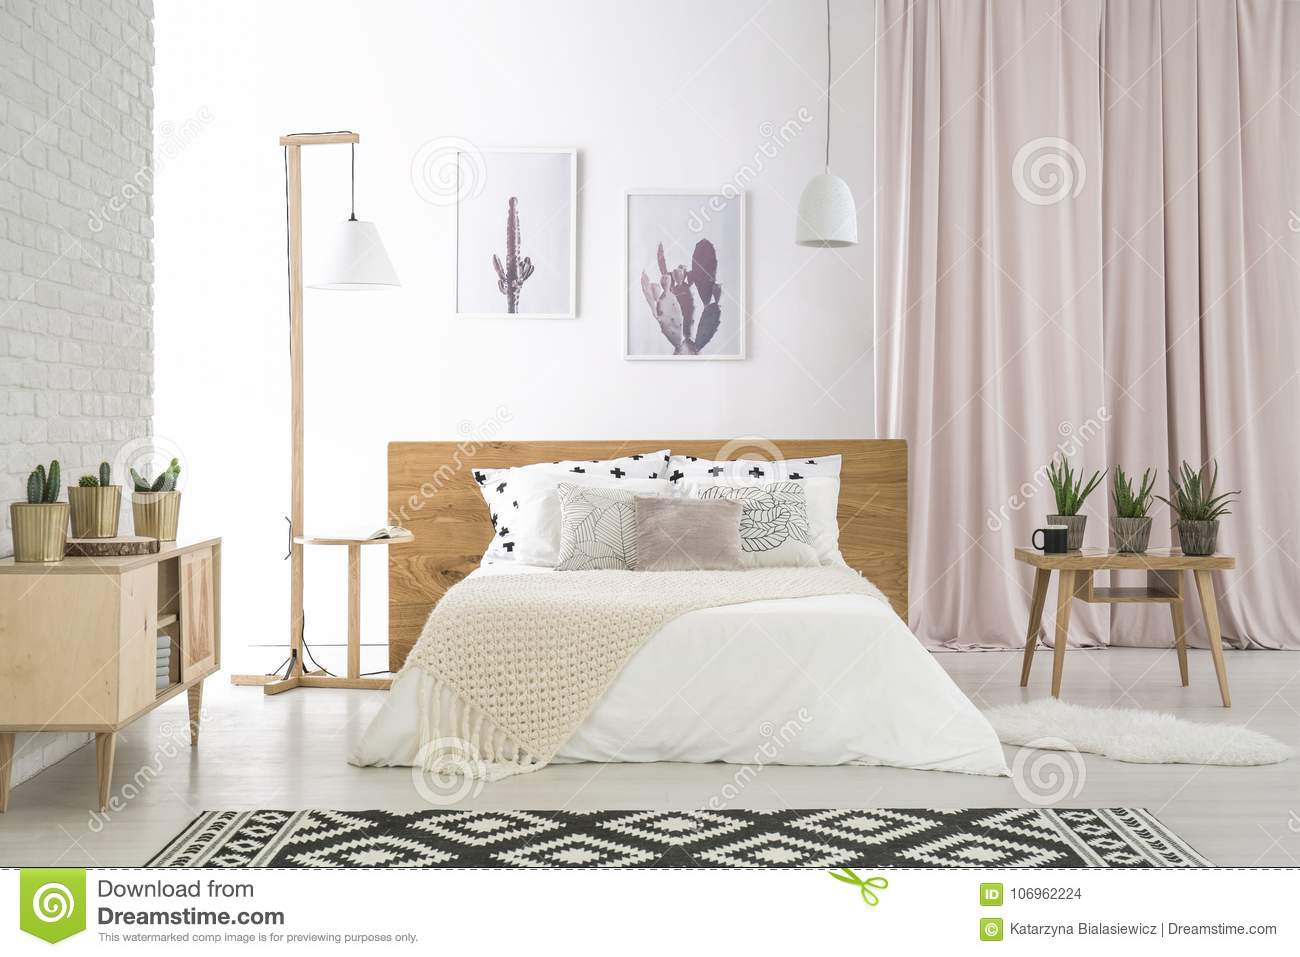 Big Bed With White Bedding In Natural, Wooden Bedroom